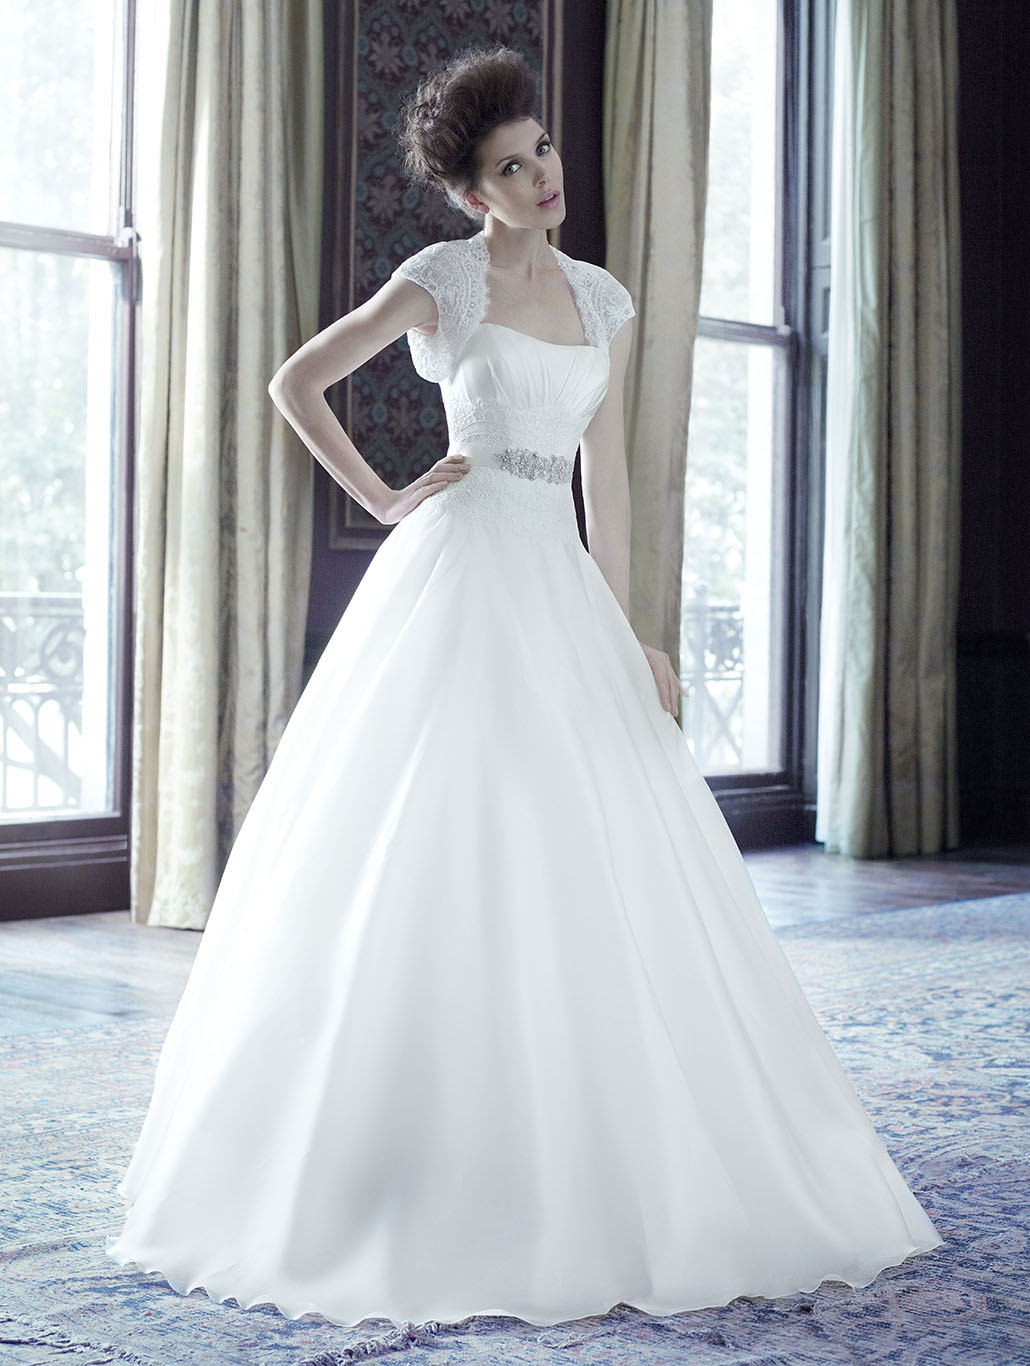 Paradise | Diamond Collection 2013 | designer wedding dresses by Suzanne Neville